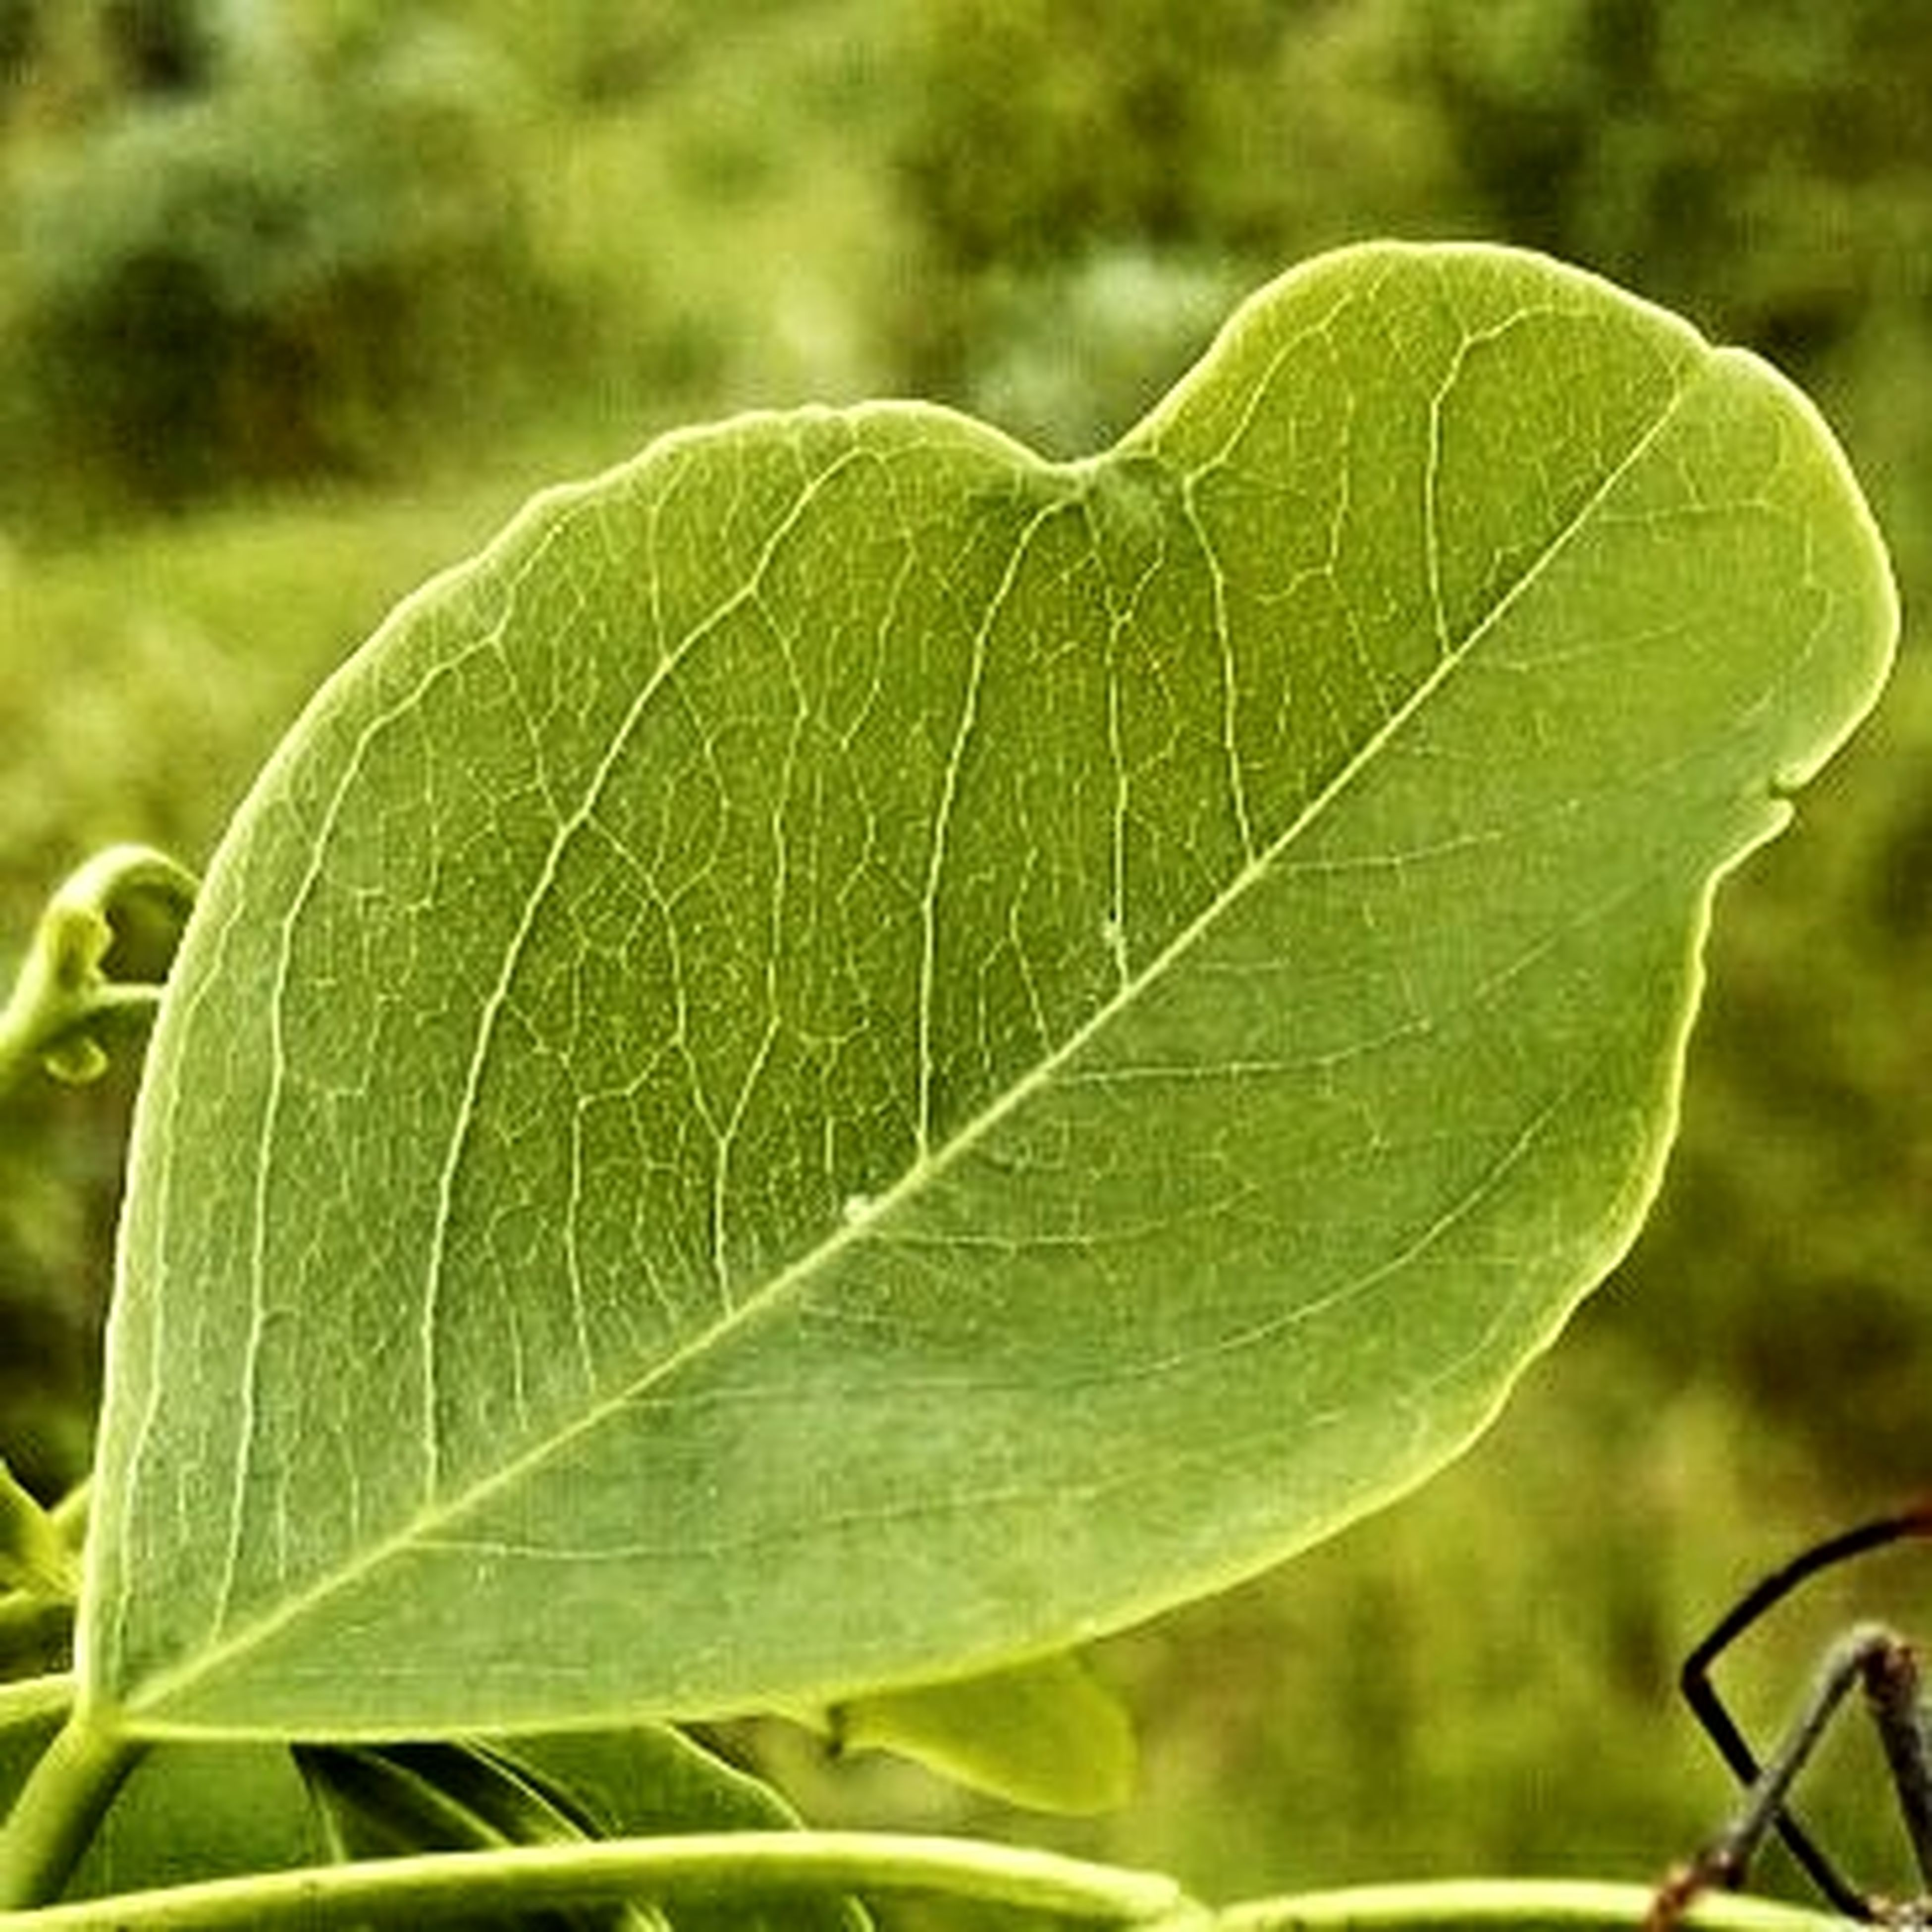 leaf, green color, close-up, focus on foreground, plant, leaf vein, growth, nature, beauty in nature, outdoors, green, day, natural pattern, selective focus, fragility, no people, freshness, stem, one animal, sunlight